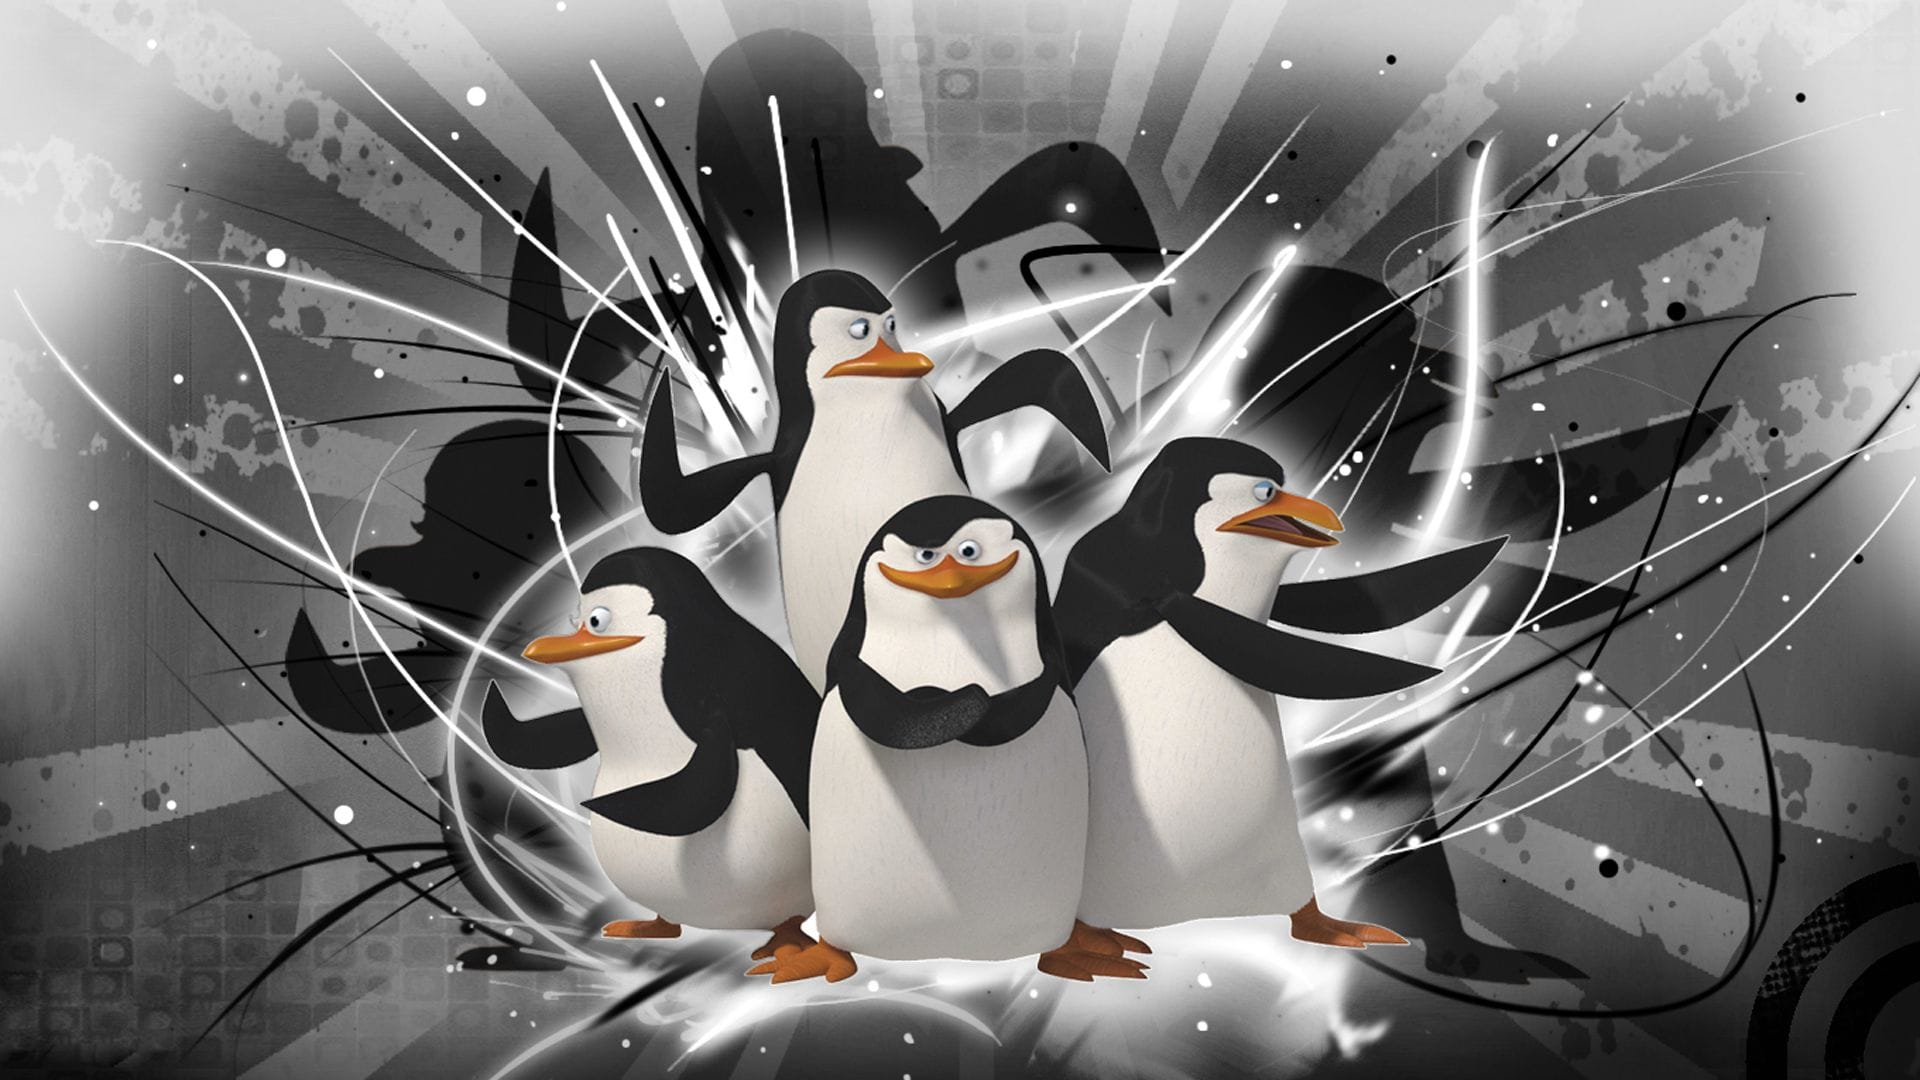 penguins of madagascar hd wallpapers | 7wallpapers